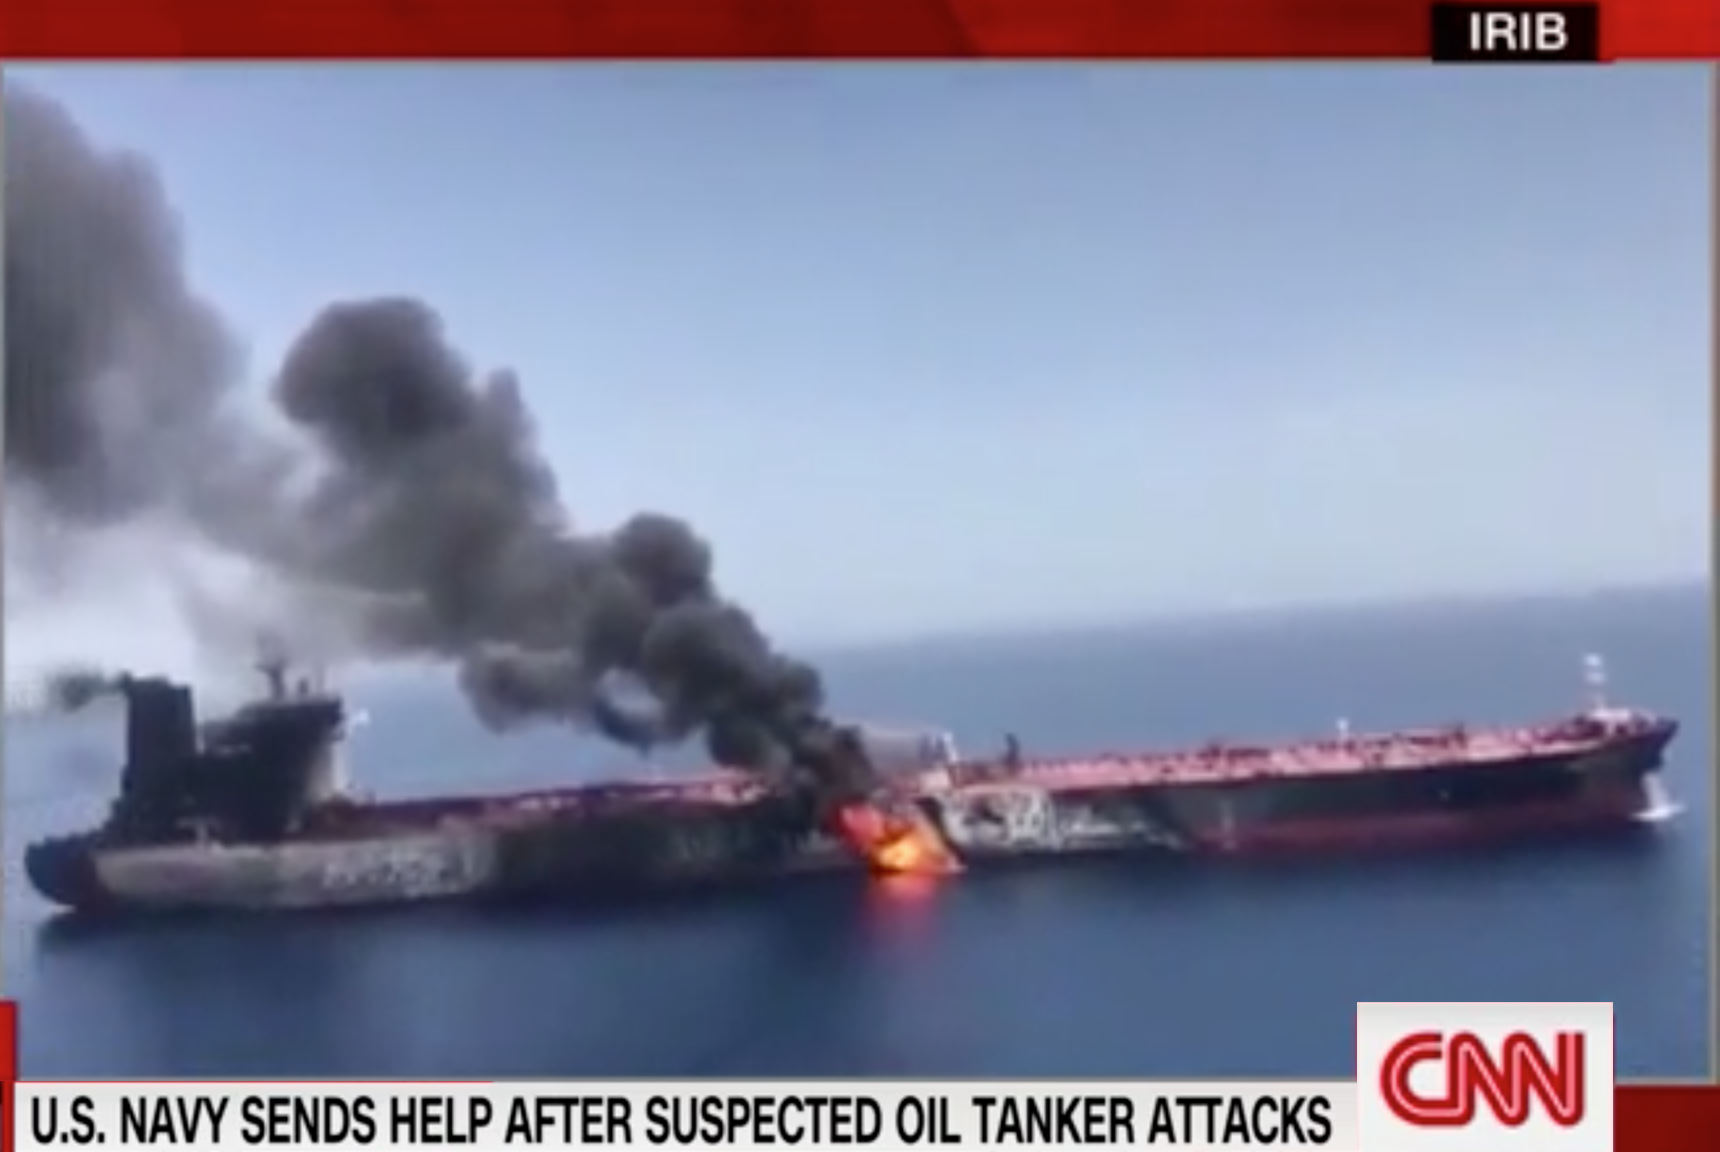 ( CNN ) Video shows fiery aftermath of suspected attack on tanker: Newly obtained footage shows one of two tankers that was purportedly attacked in the Gulf of Oman.